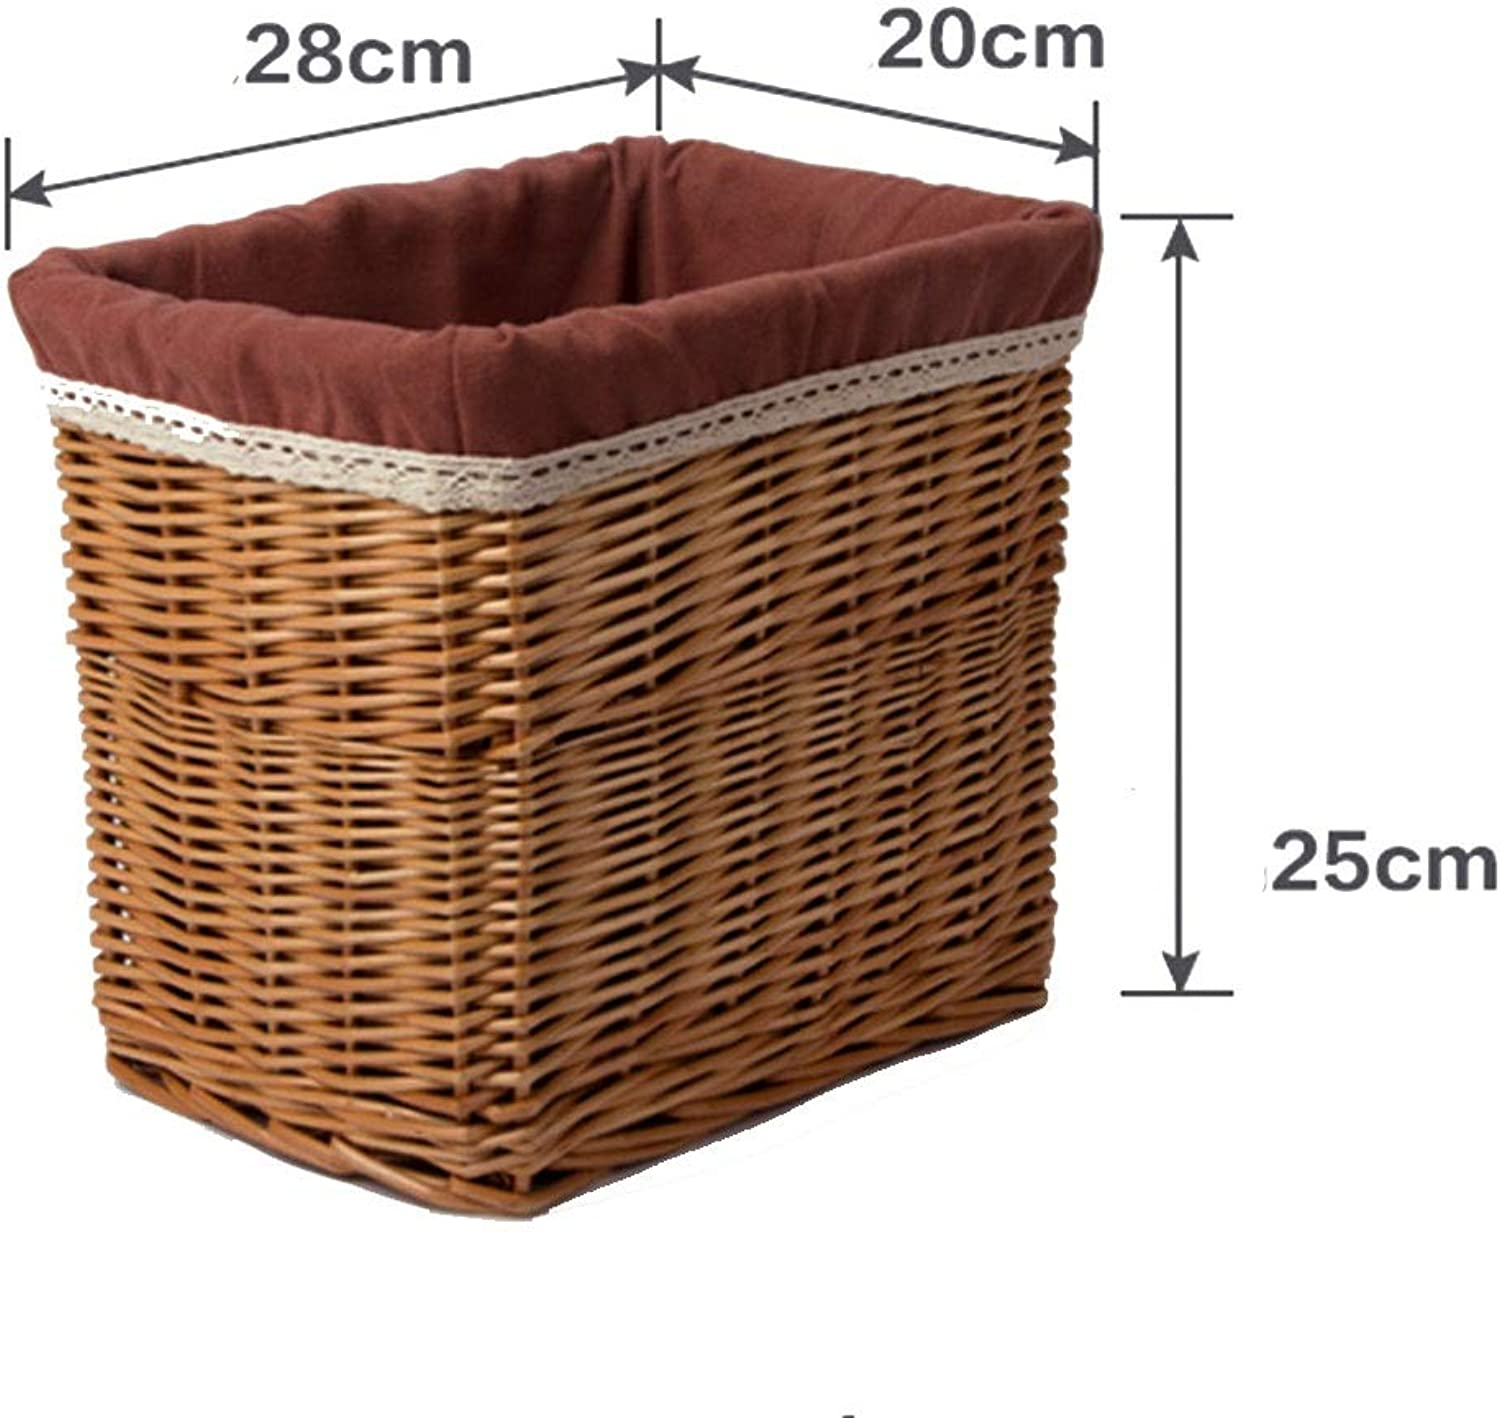 ZHANGQIANG Storage Basket Laundry Basket Trunk Storage Chest Hamper Basket Box Removable Lining (Large) (color   Brown, Size   28  20  25cm)